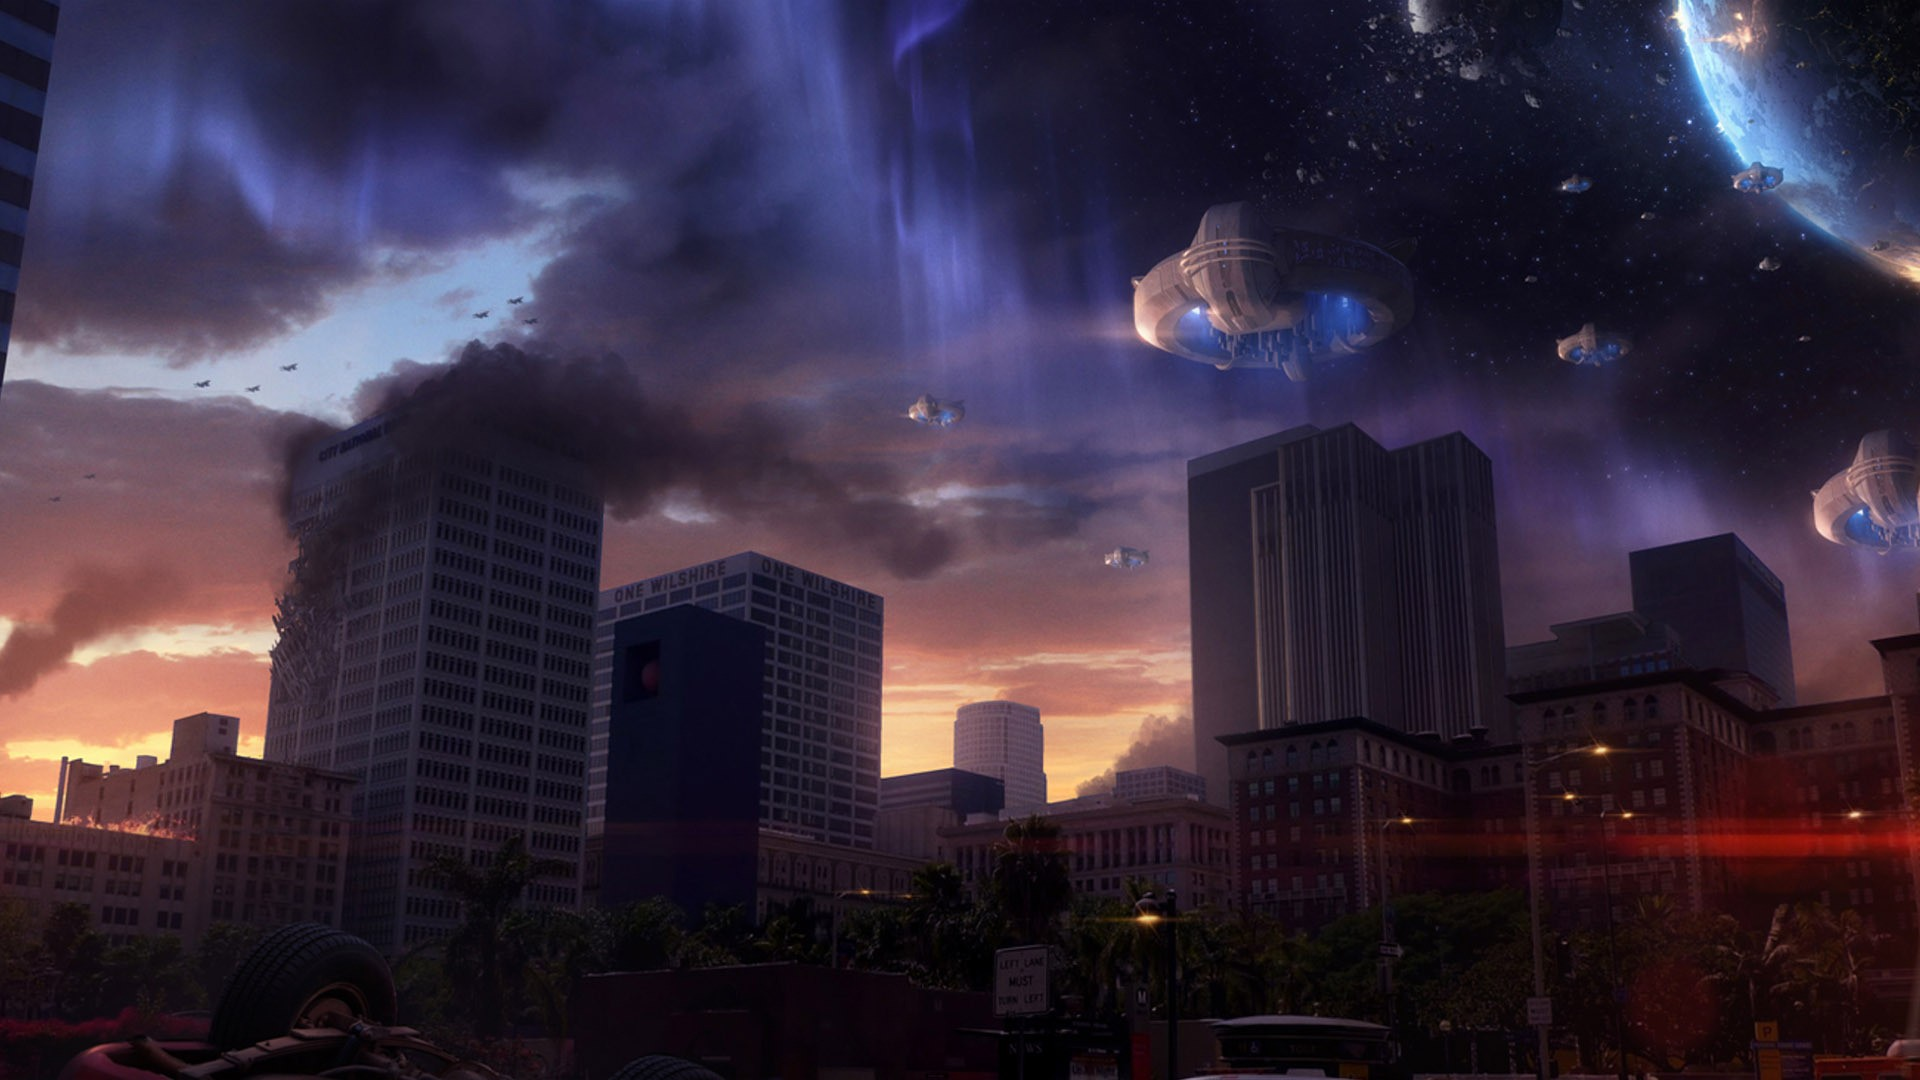 General 1920x1080 artwork Space Invaders fantasy art concept art spaceship city space urban